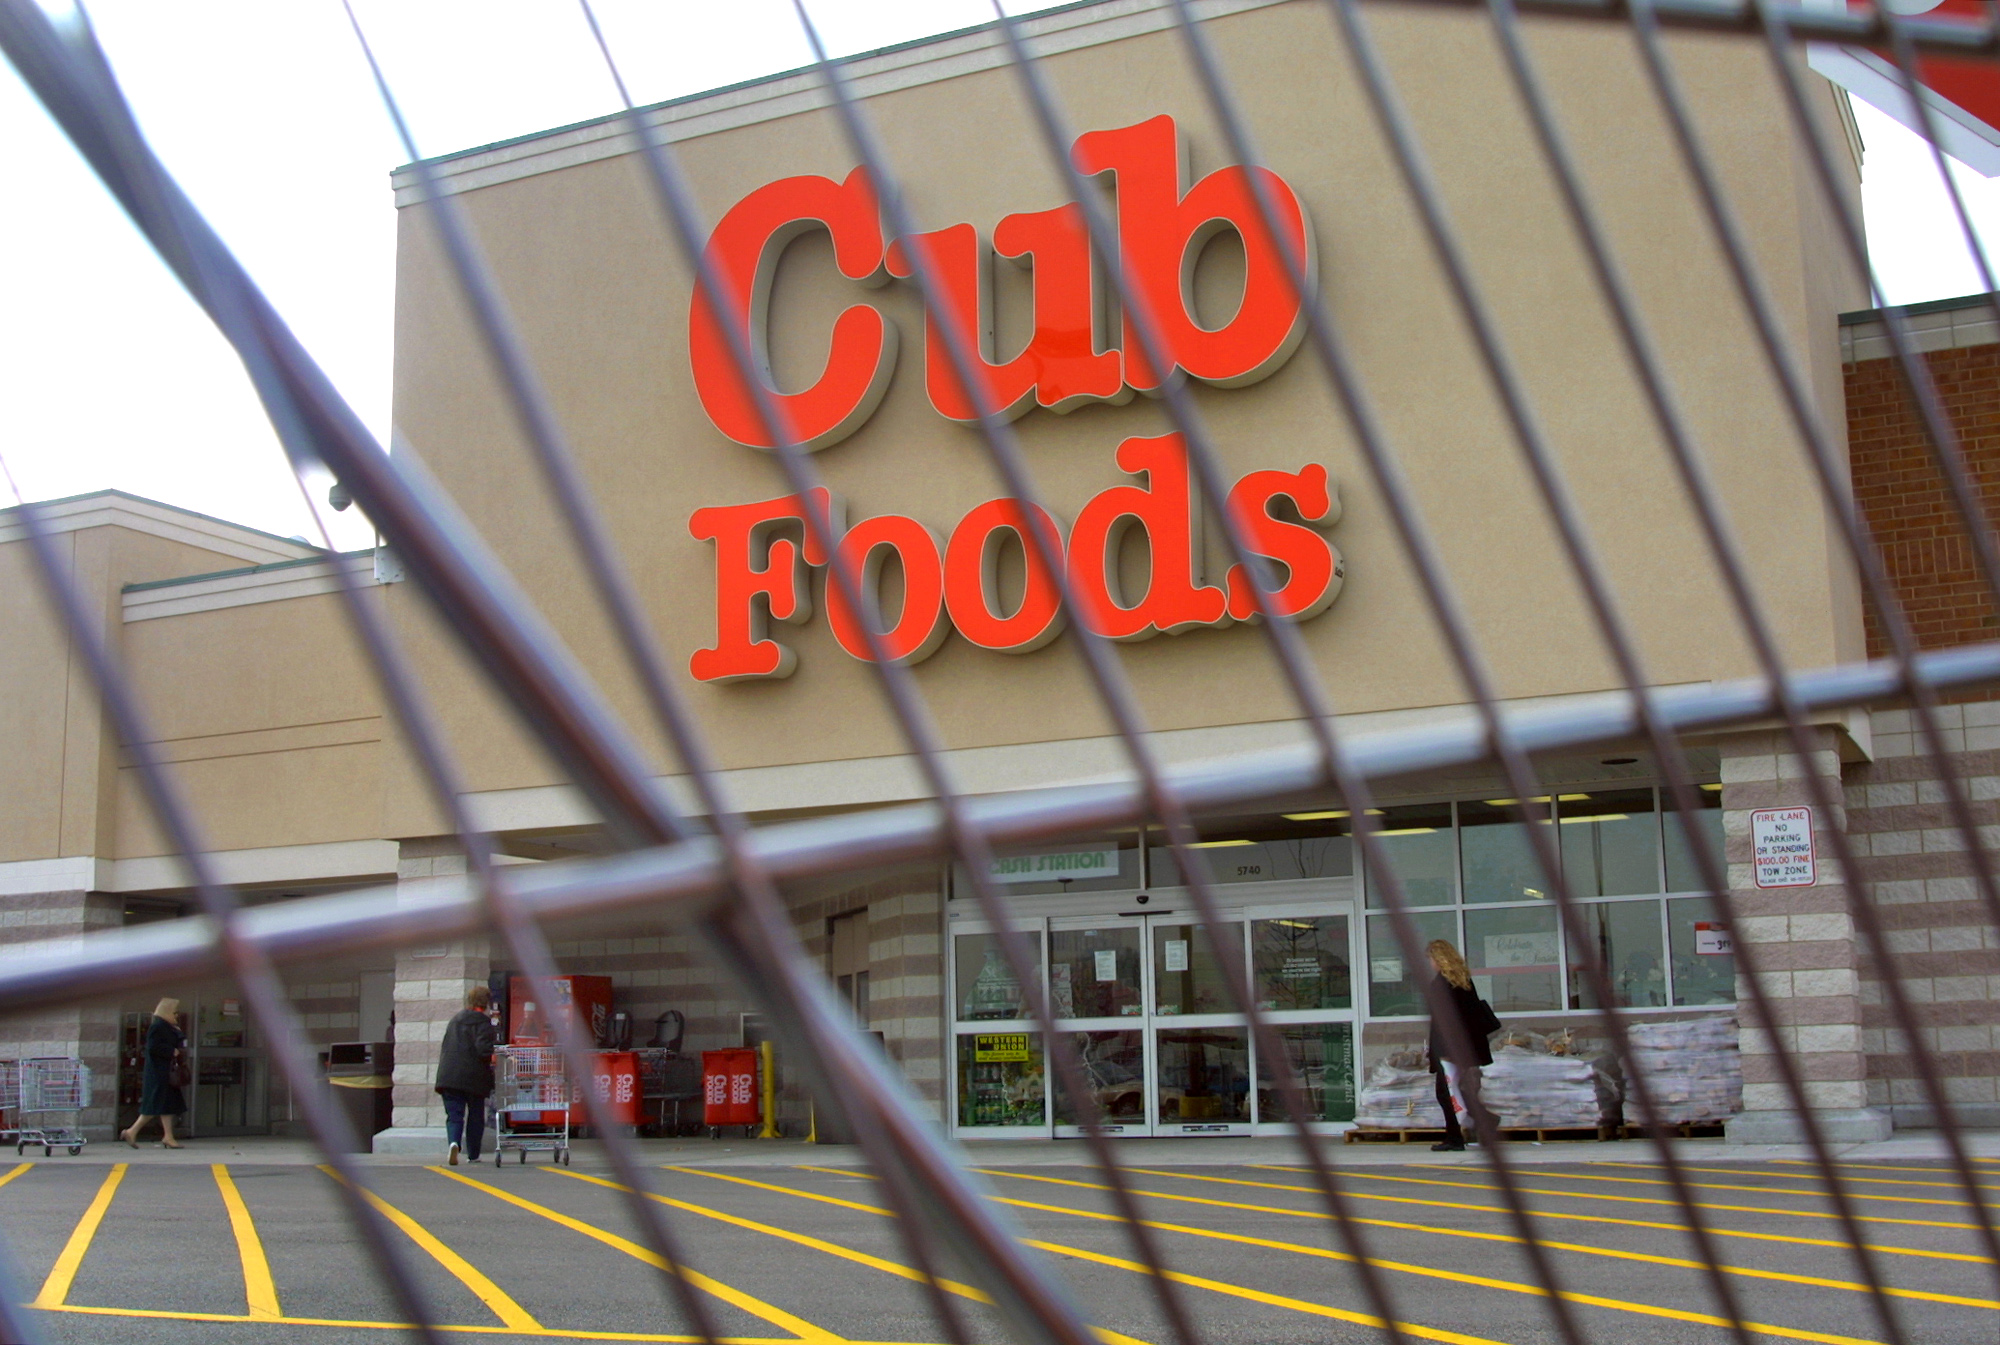 A Cub Foods store is seen through a grocery shopping cart December 4, 2000 in Niles, Illinois. The store is a subsidiary of Supervalu.